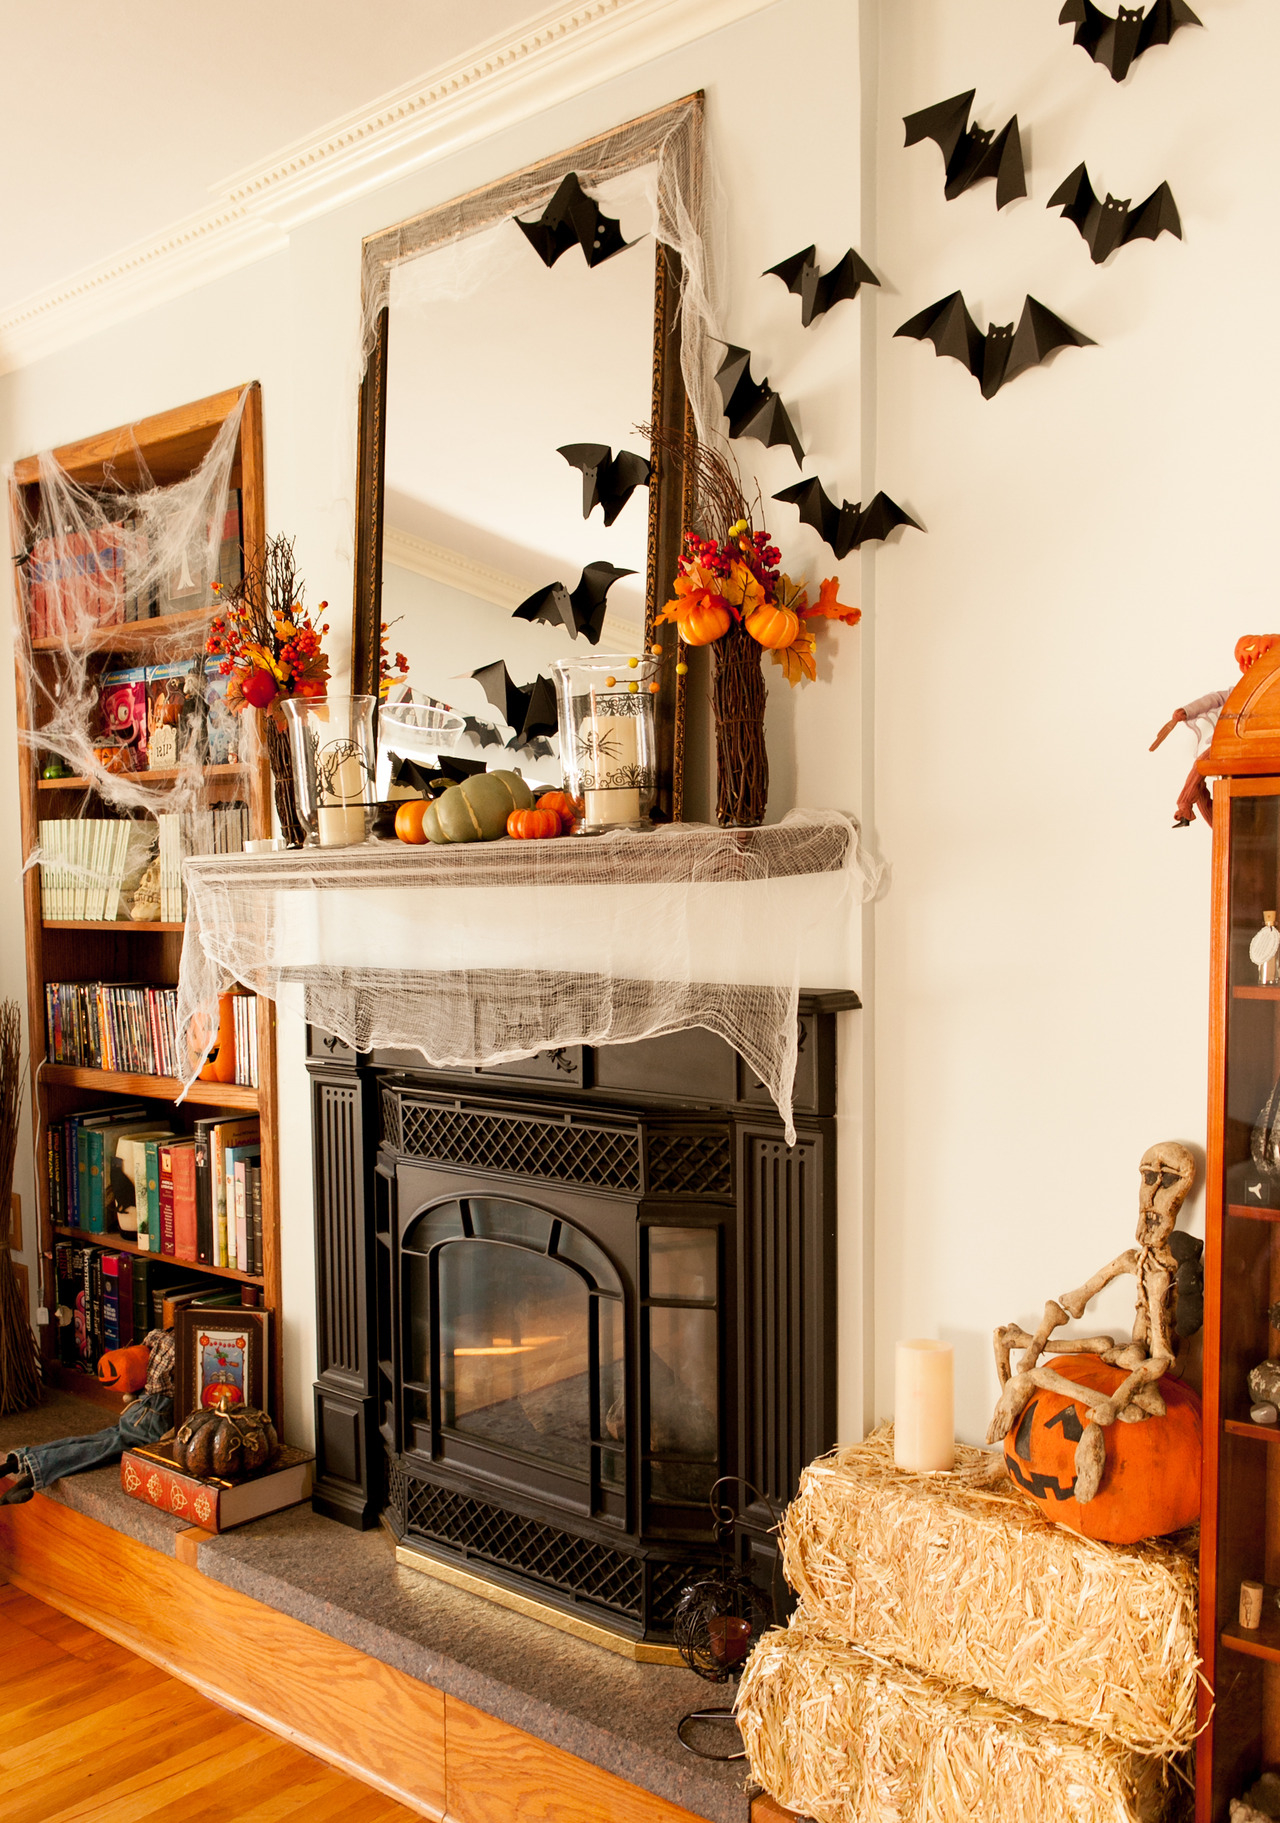 halloween bat decoration pictures photos and images for facebook tumblr pinterest and twitter. Black Bedroom Furniture Sets. Home Design Ideas